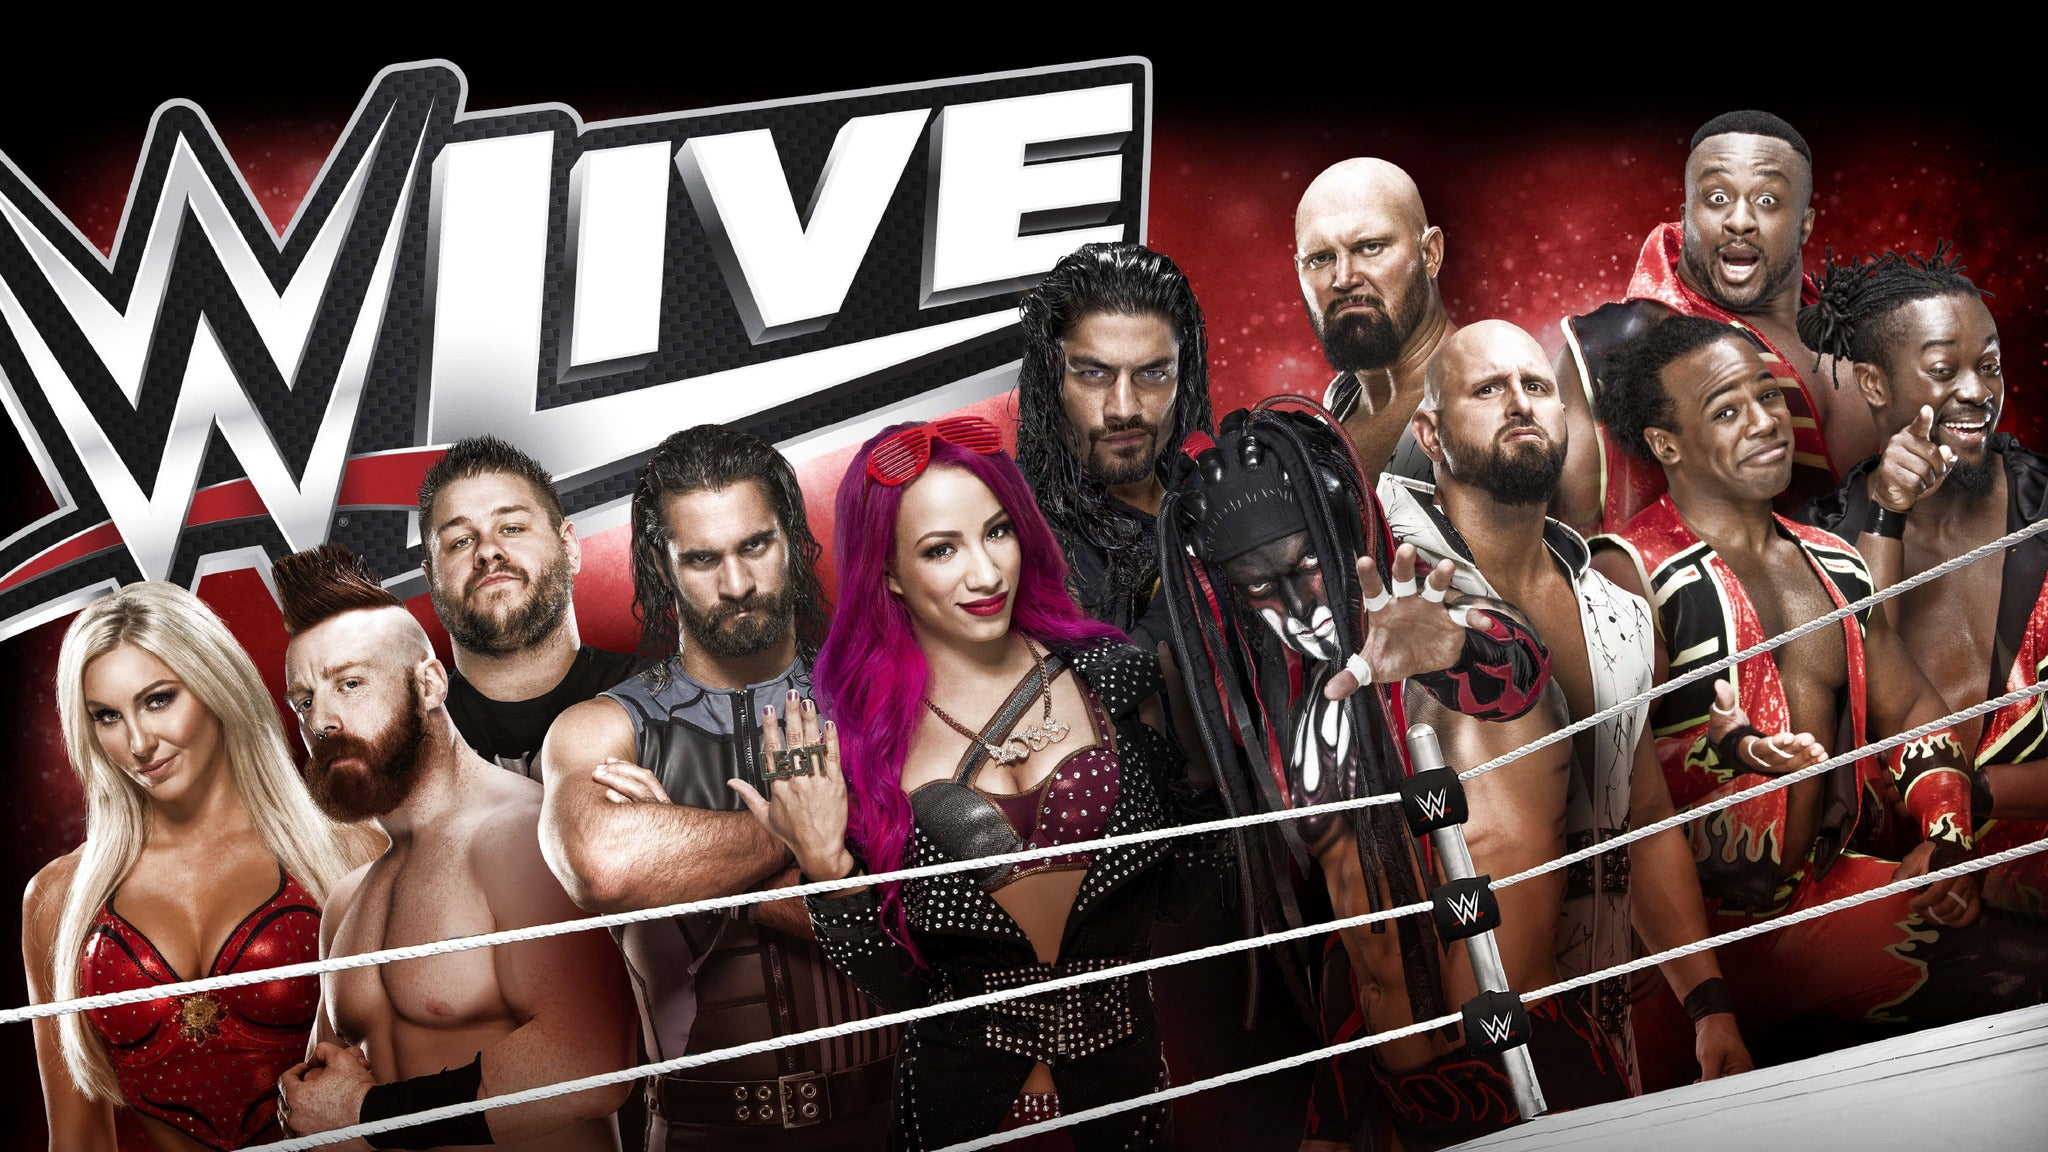 WWE Live at Convocation Center Jonesboro